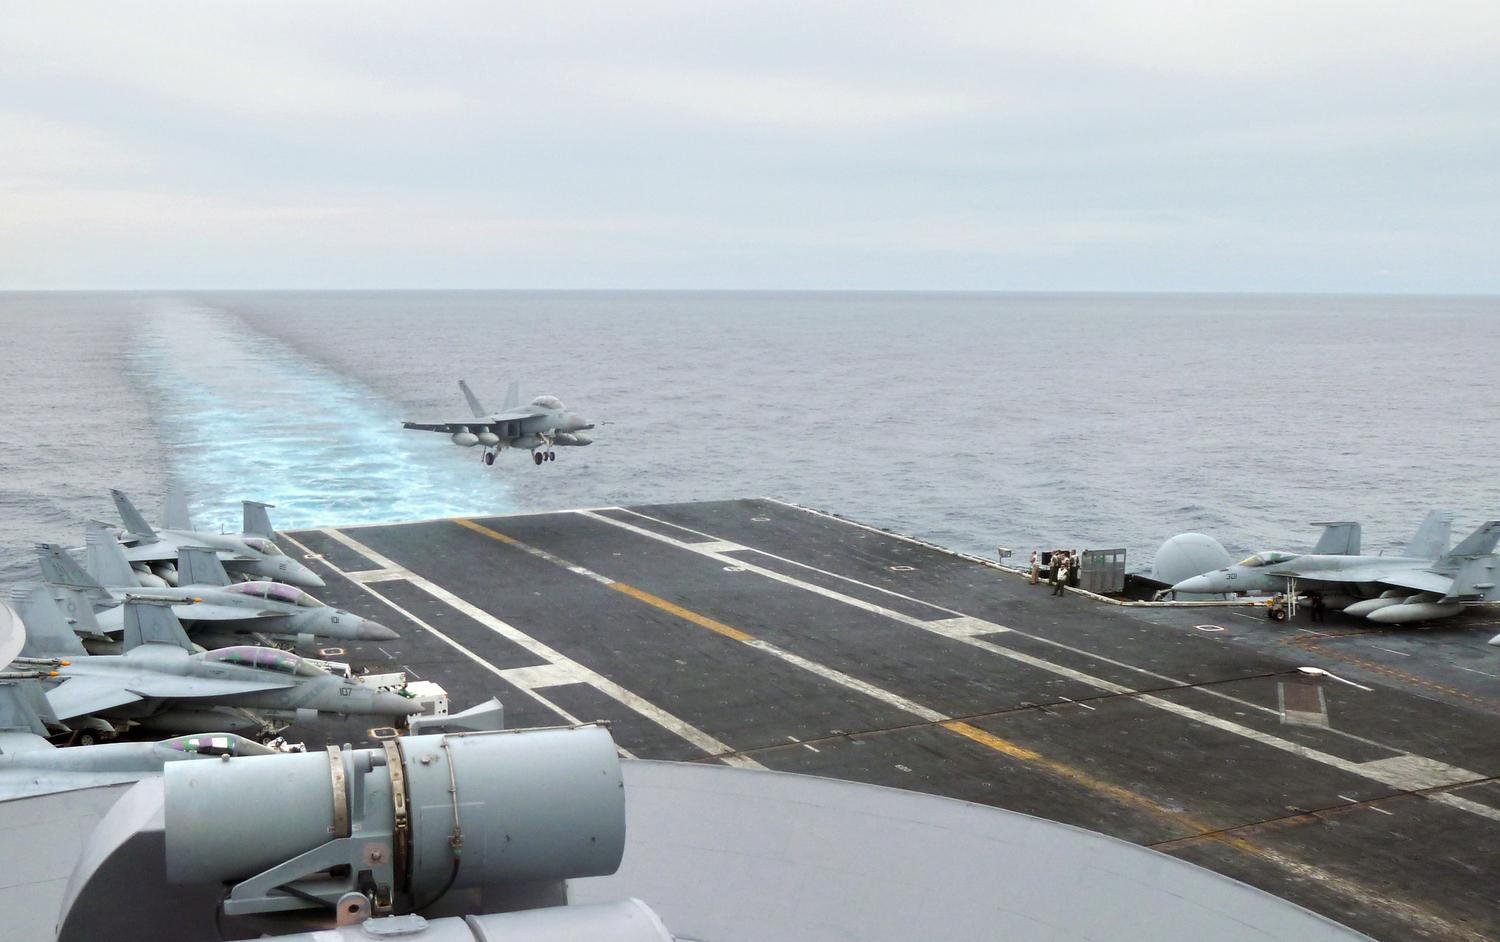 Crisis Averted in the South China Sea   The Takeaway   WNYC